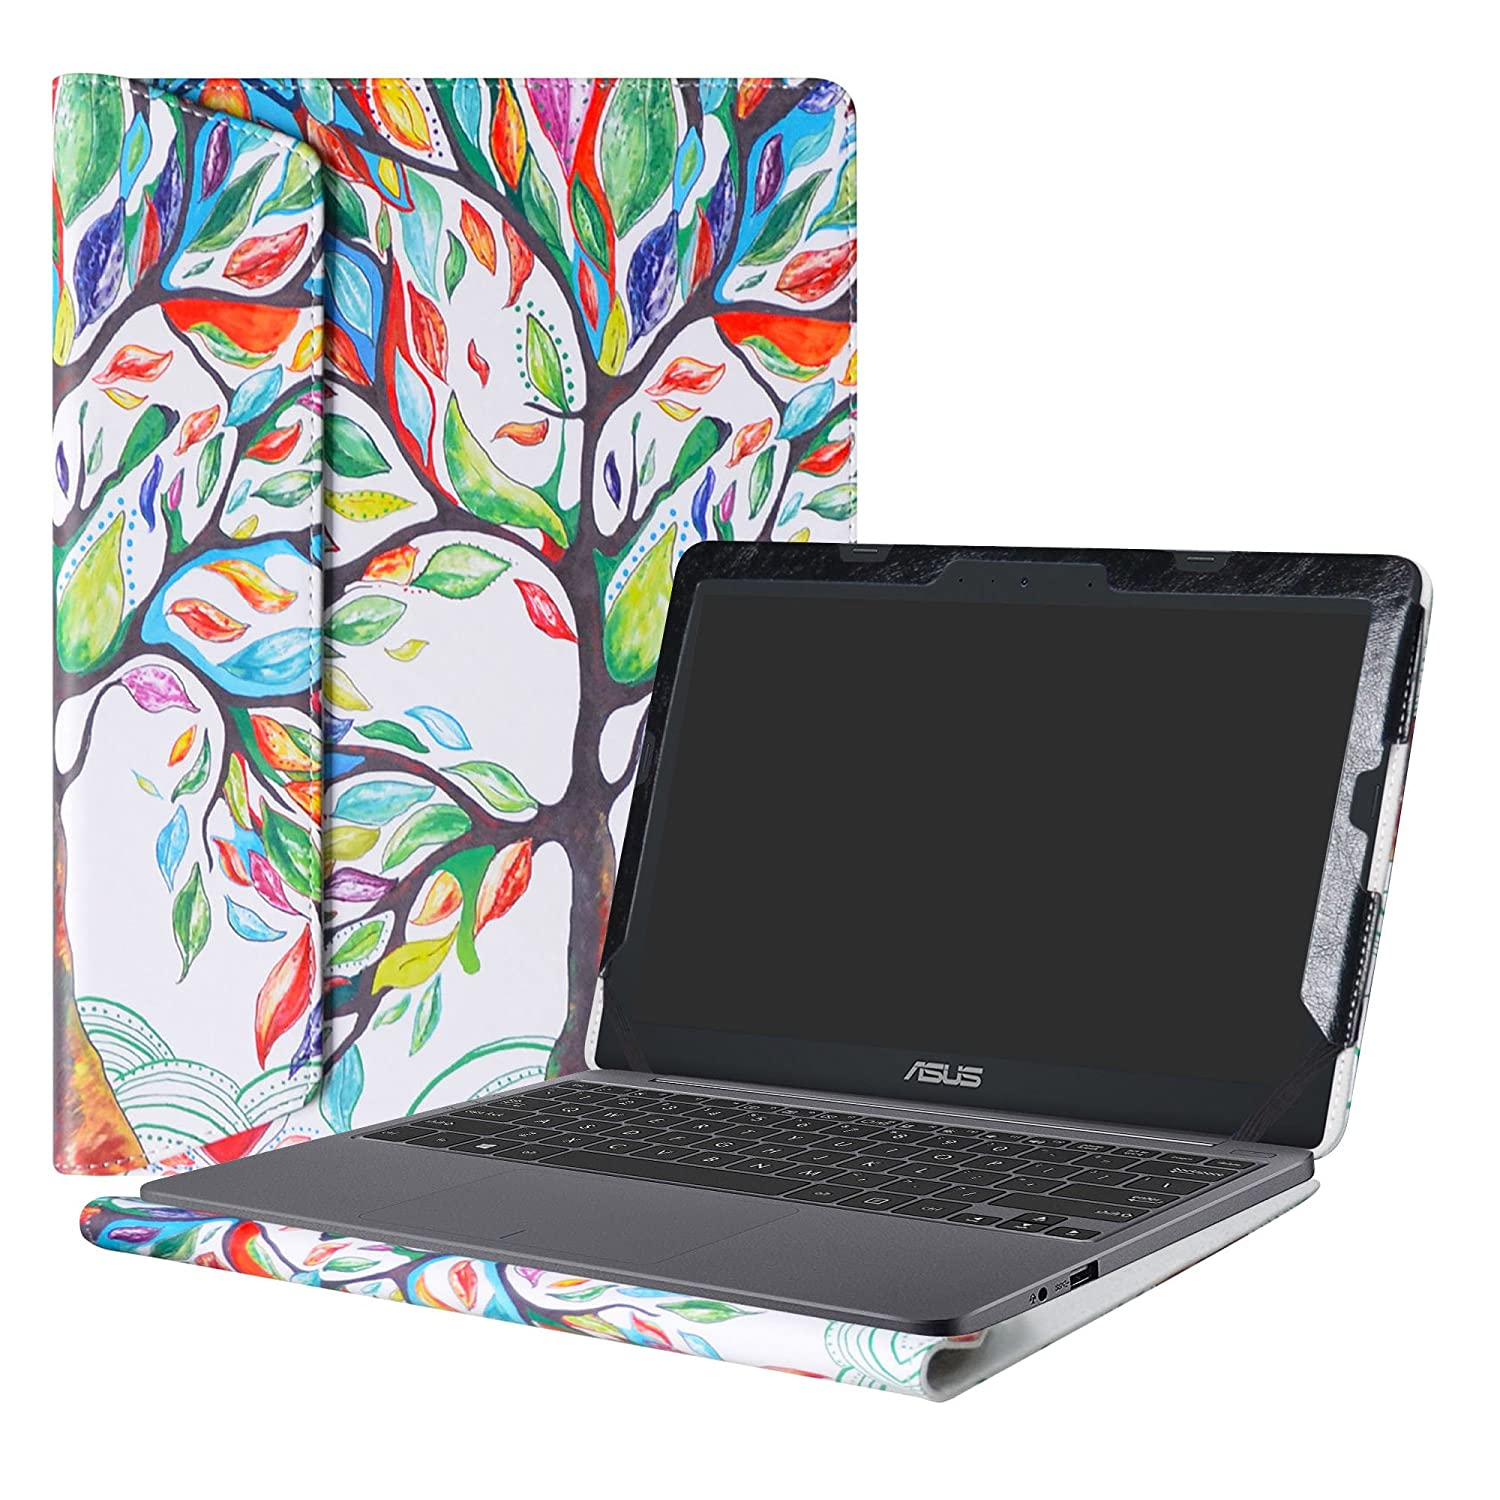 Alapmk Protective Case Cover For 11.6 ASUS VivoBook E203NA E200HA L200HA Chromebook C201 C201PA Series Laptop Warning Only fit model E203NA E200HA L200HA C201PA Love Tree